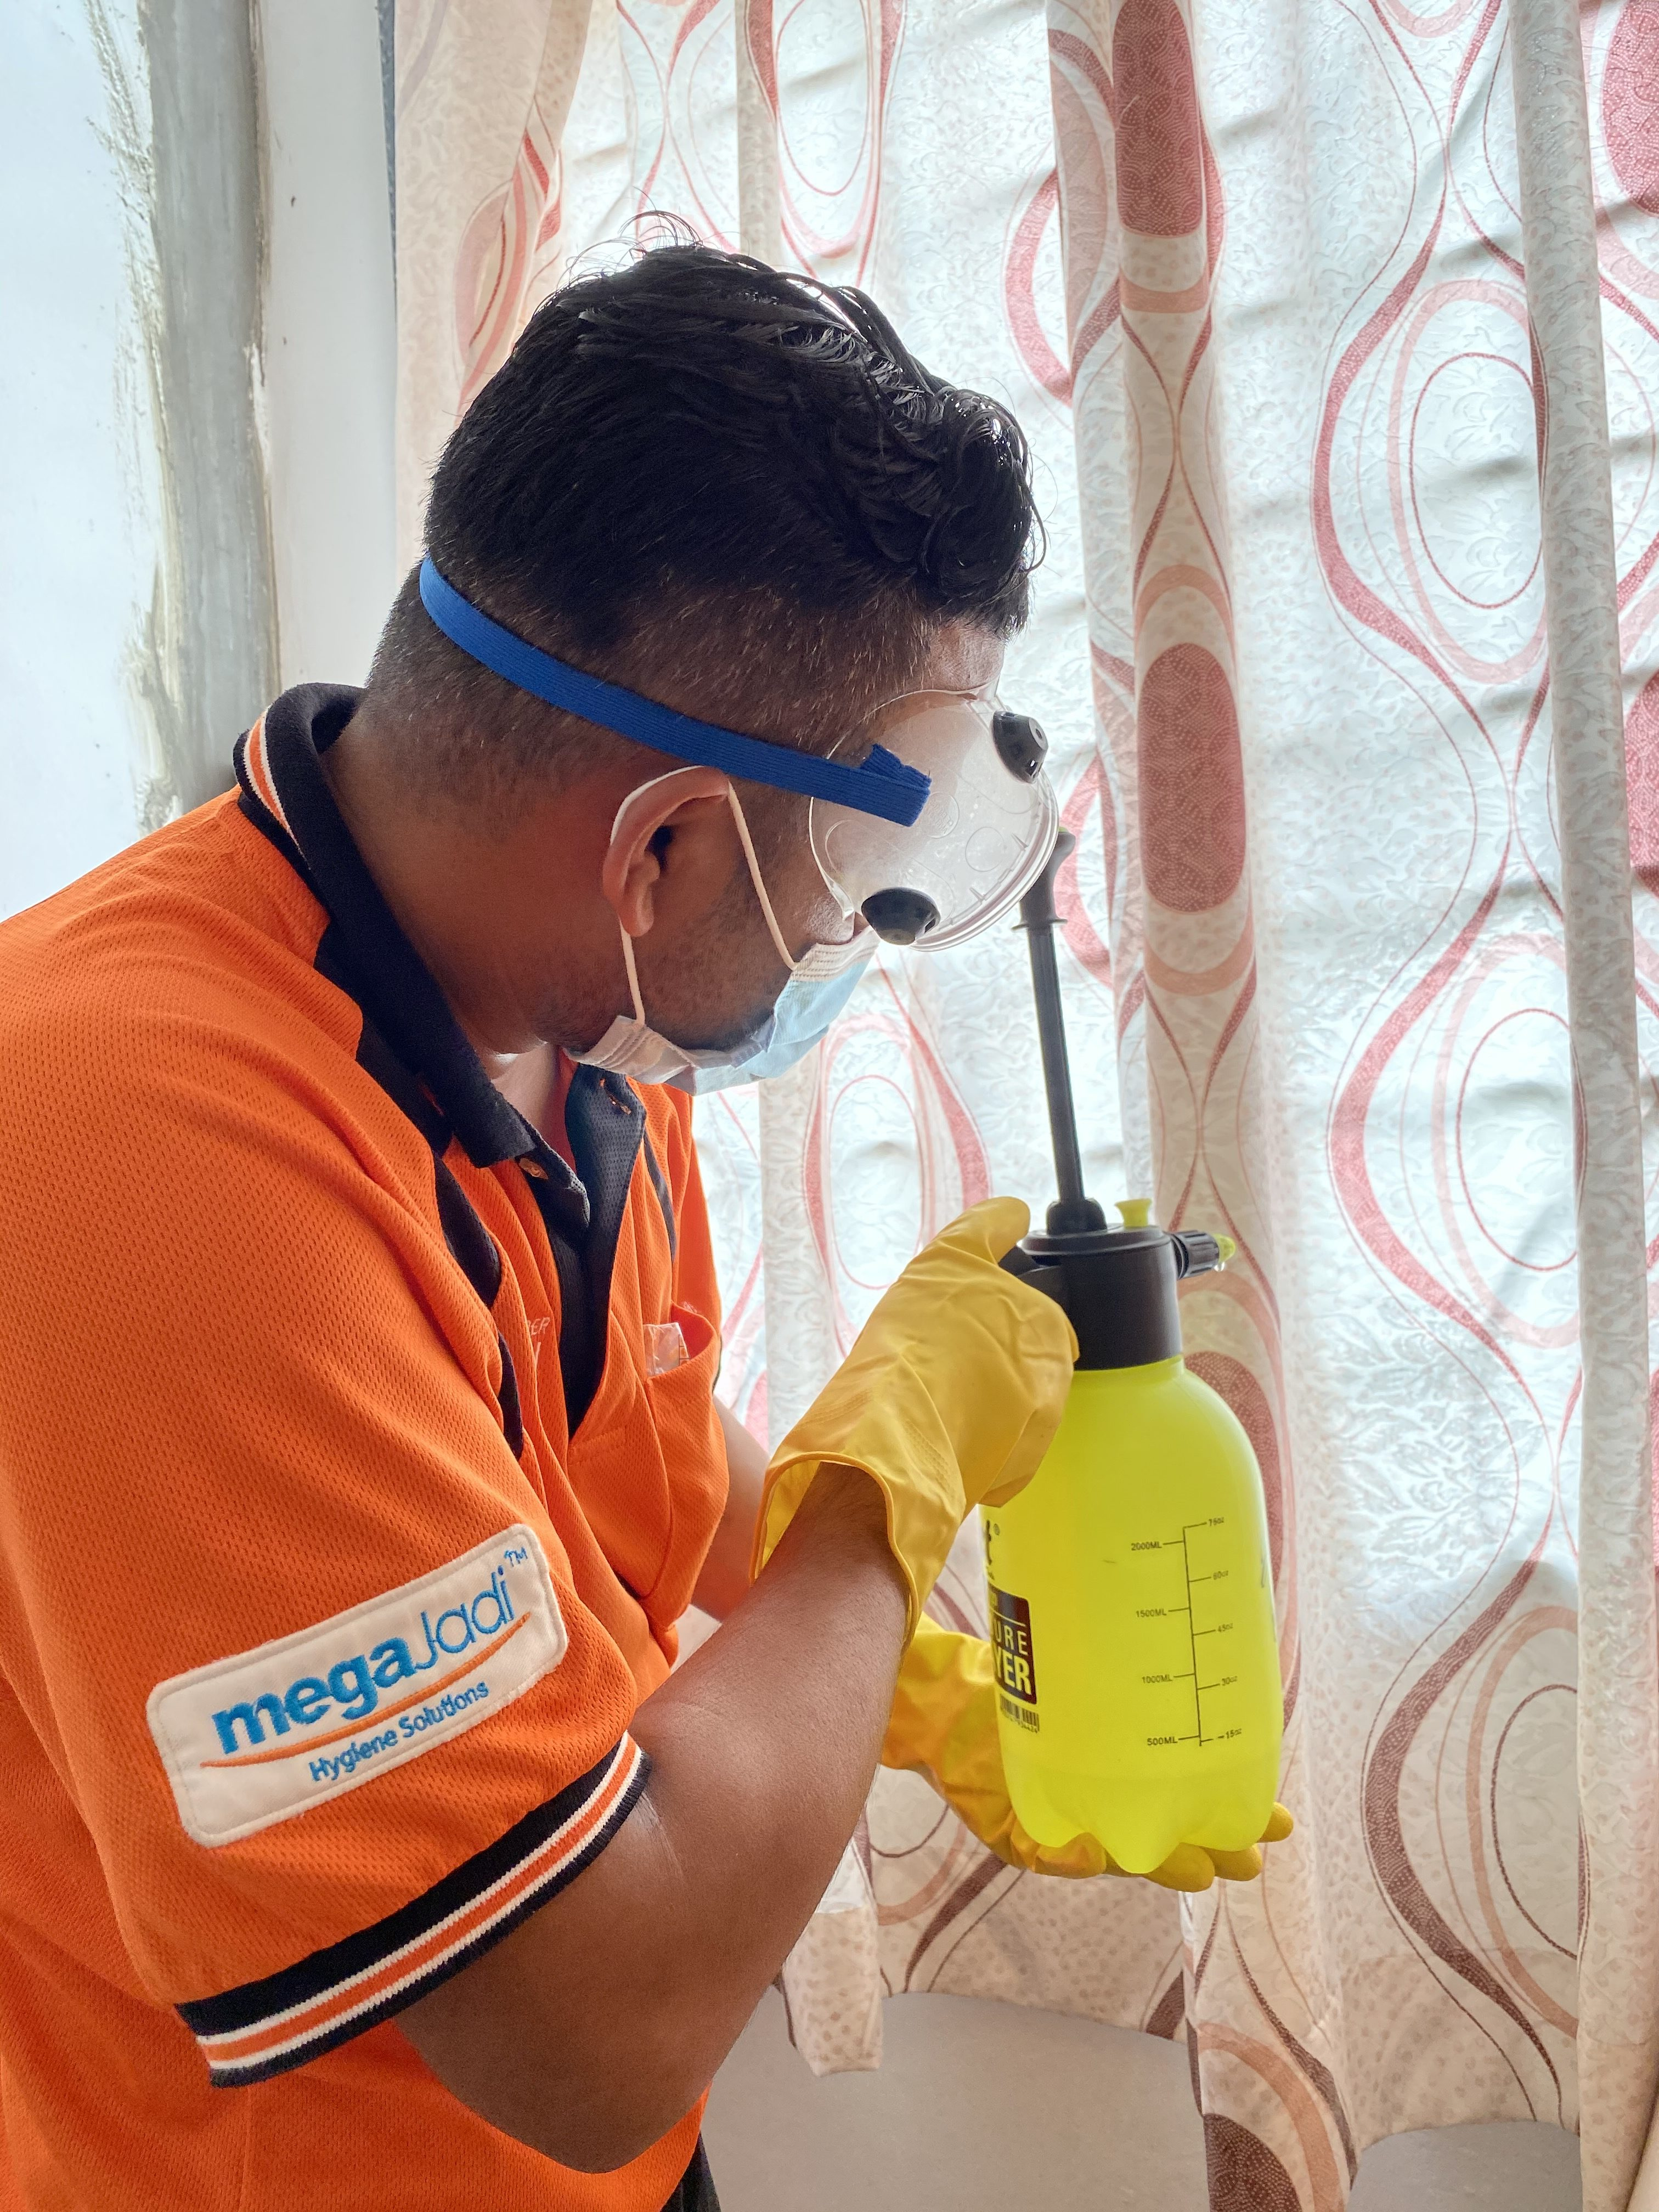 megajadi-hygiene-solutions-house-cleaning-services